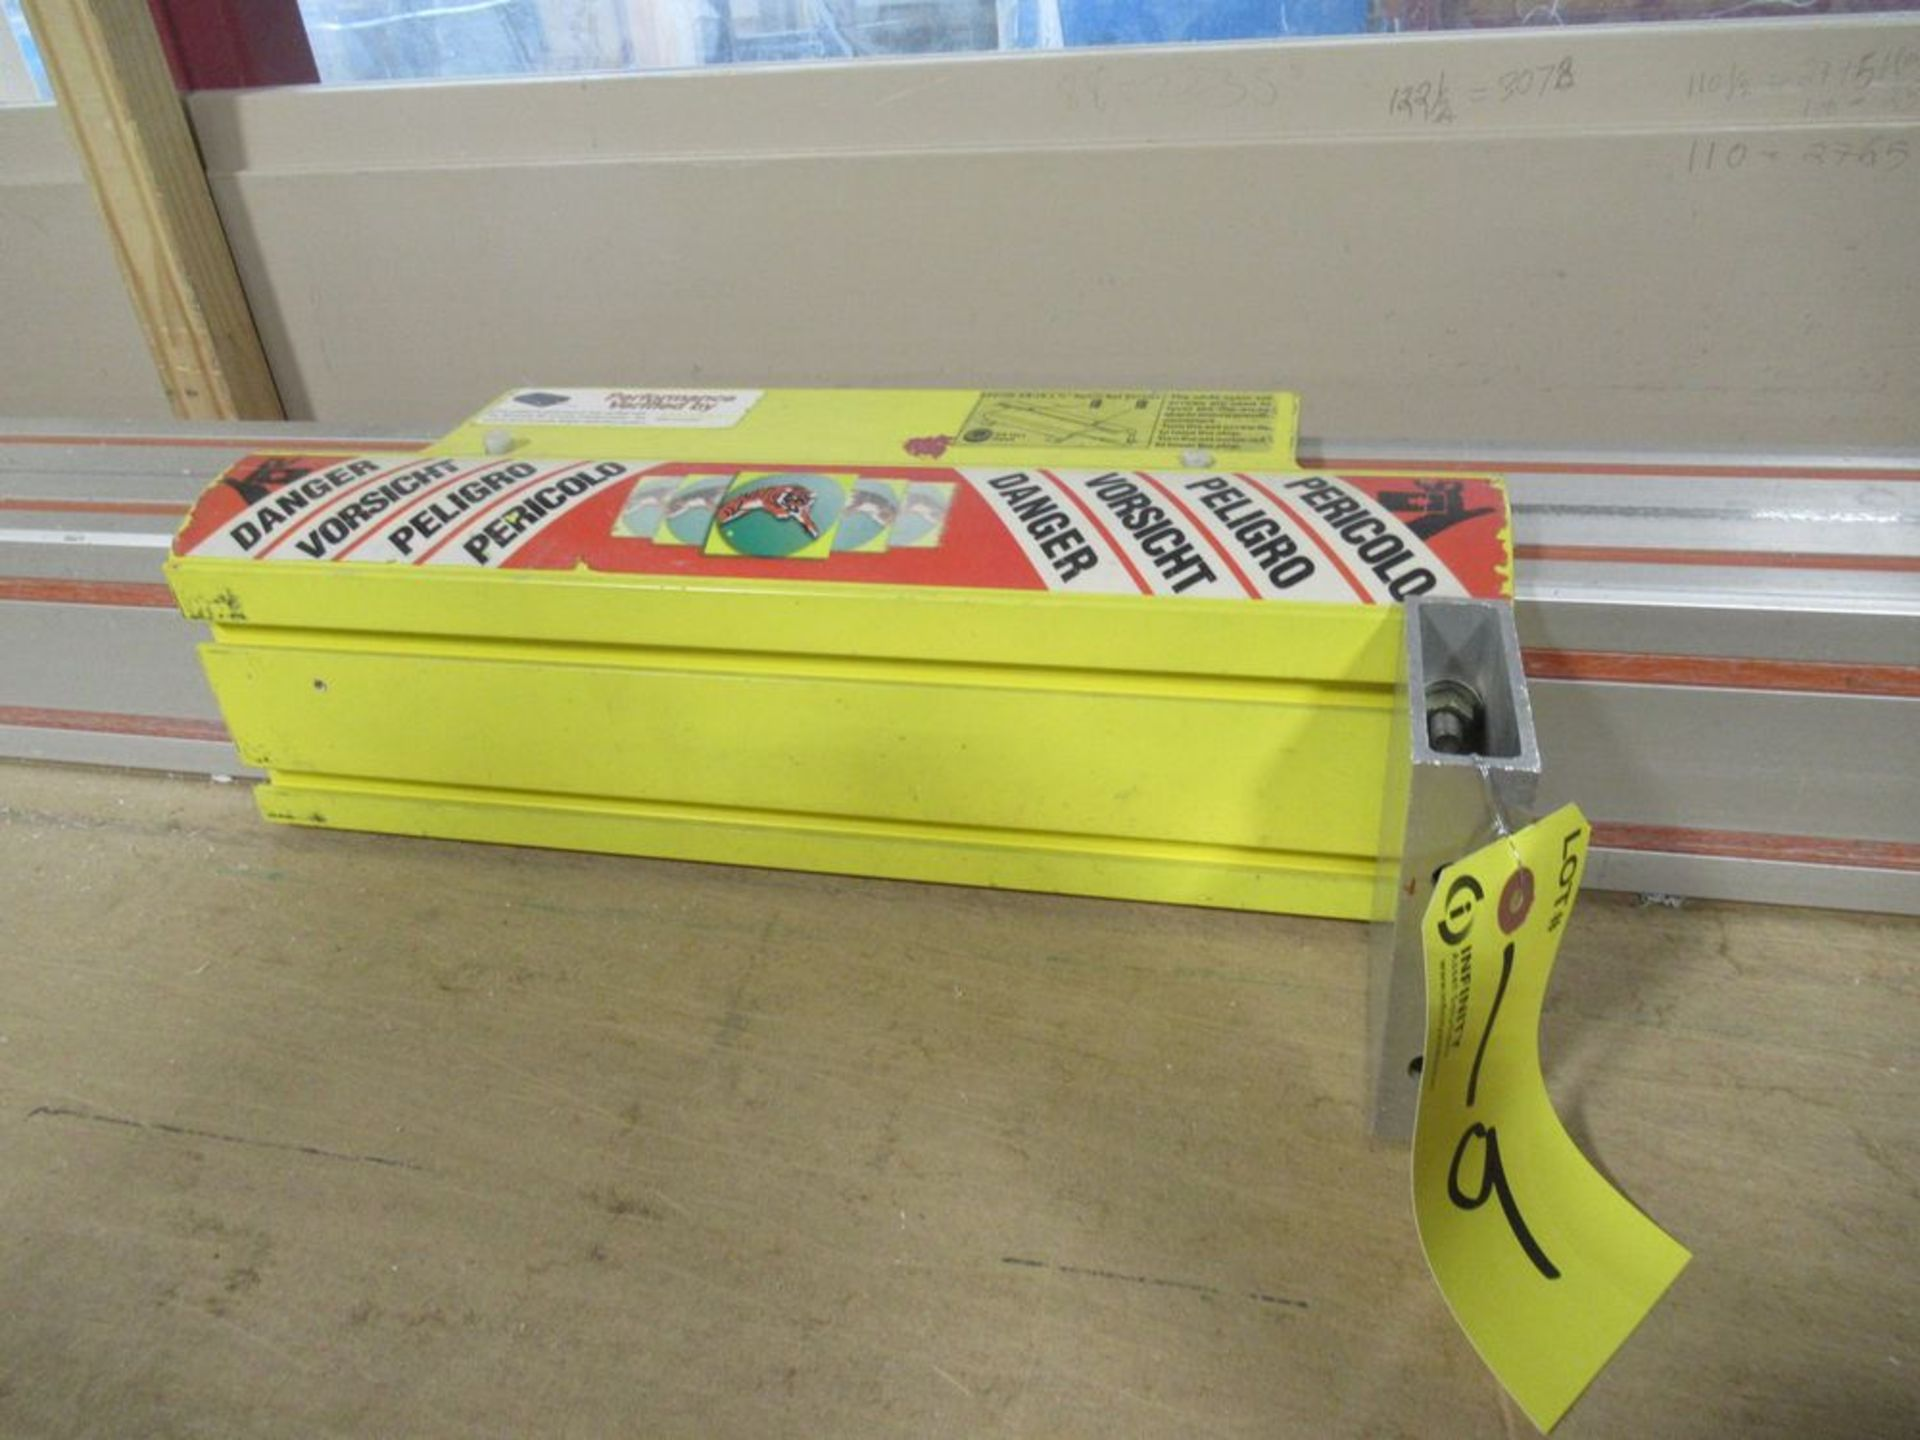 """TIGER STOP 12' MATERIAL MEASURING SYSTEM W/ 22"""" X 12' TABLE - Image 3 of 4"""